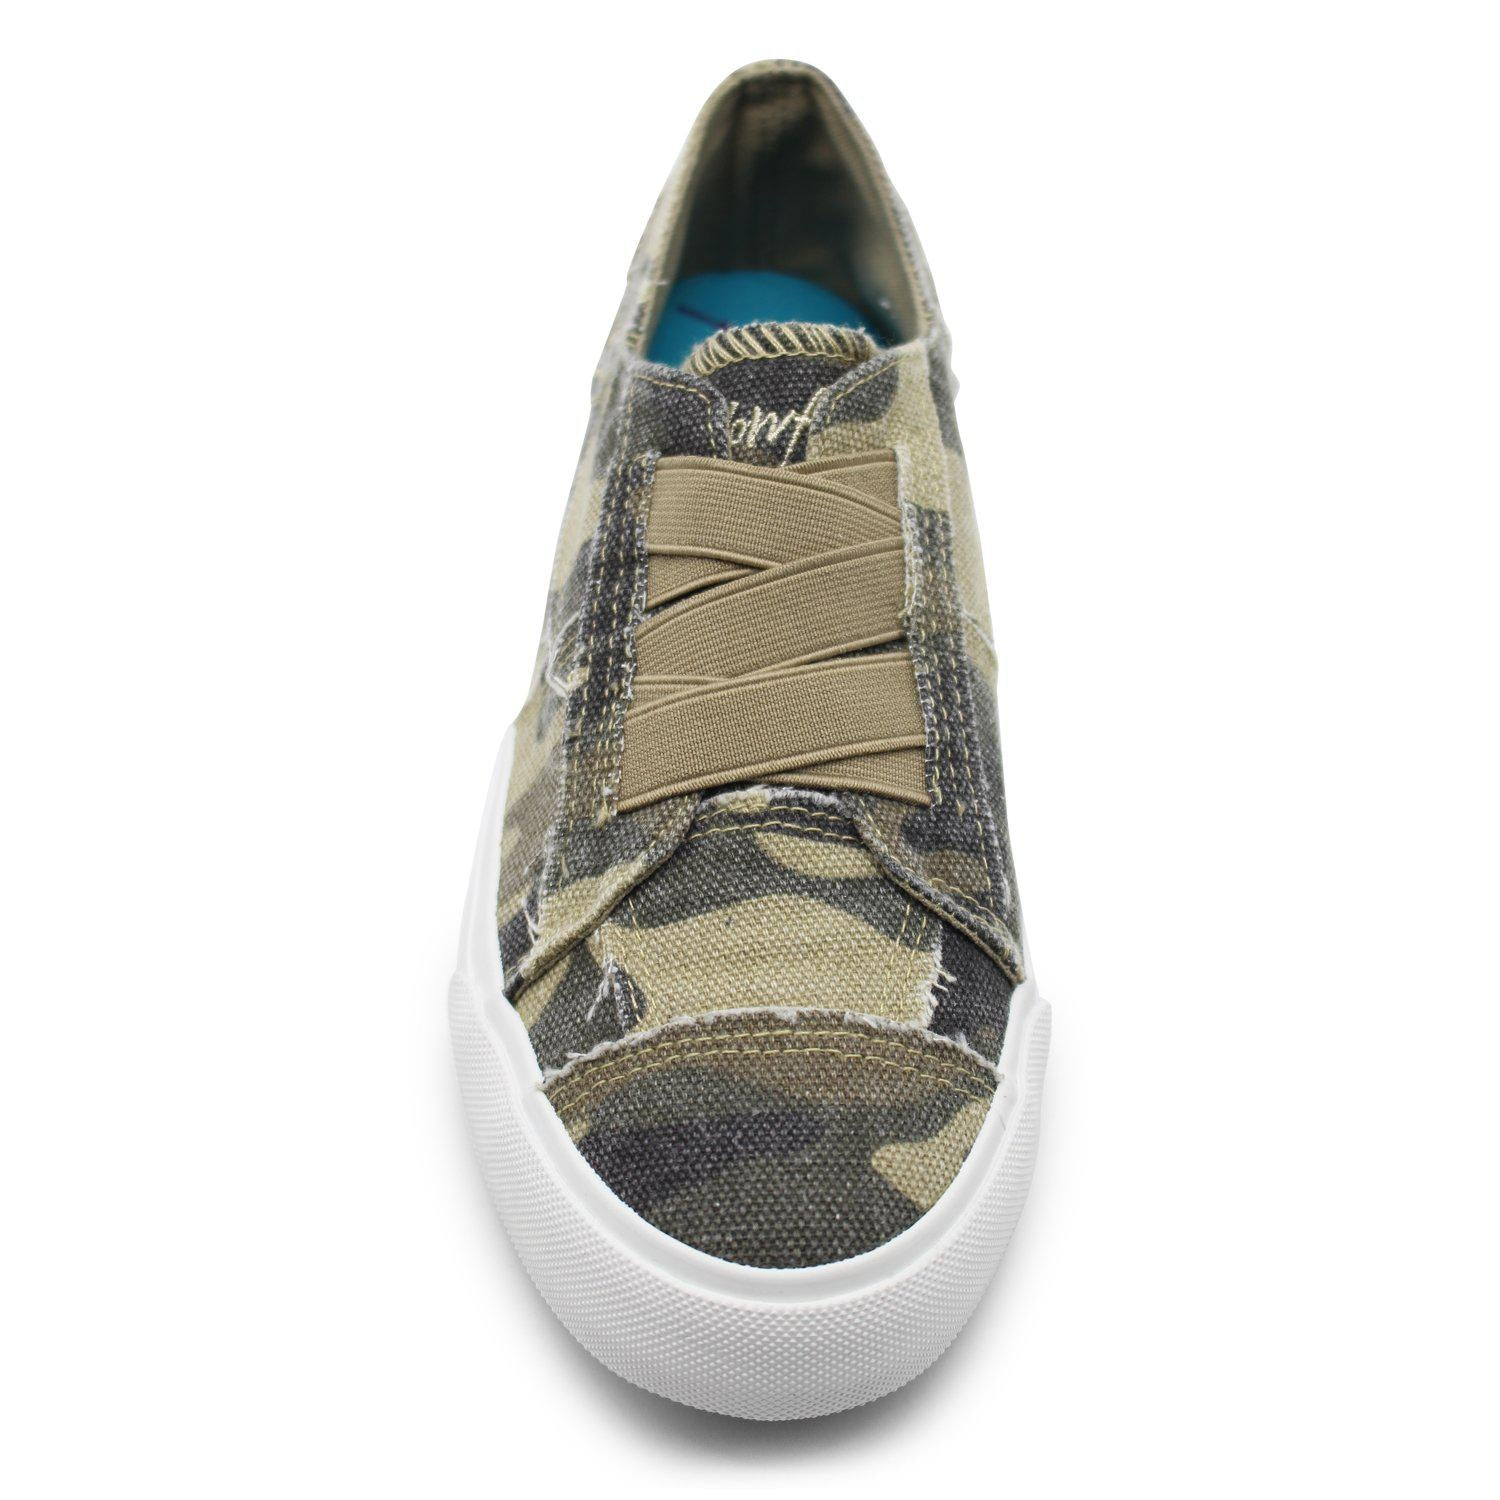 Blowfish Marley - Natural Camouflage Canvas